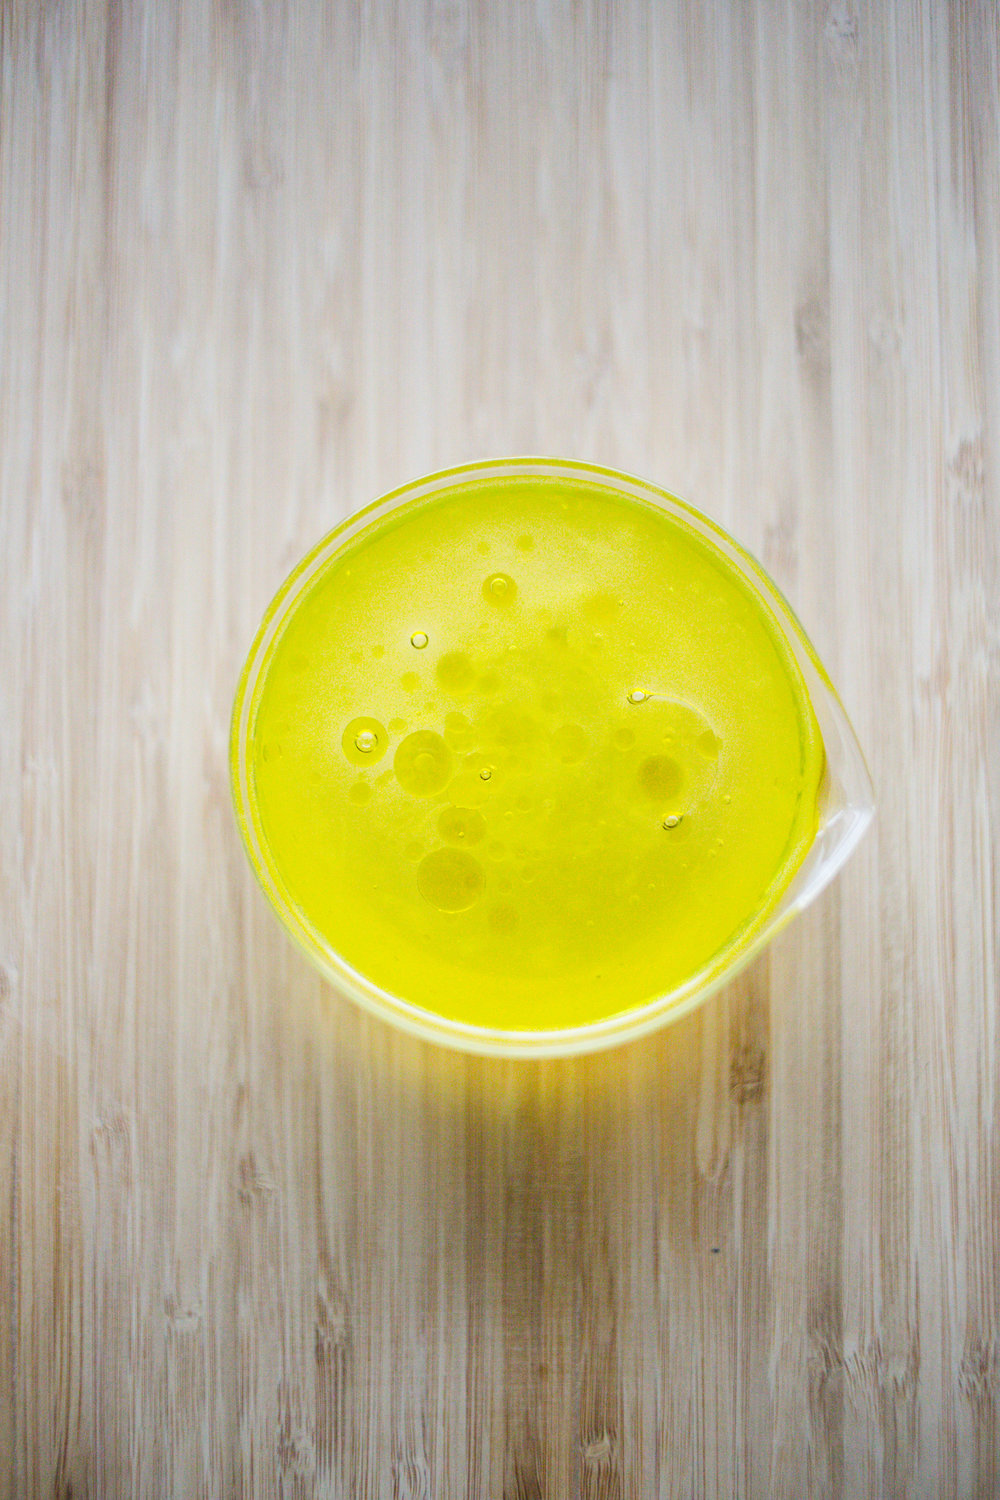 1/3 cup aloe vera gel + 1/3 cup extra virgin olive oil